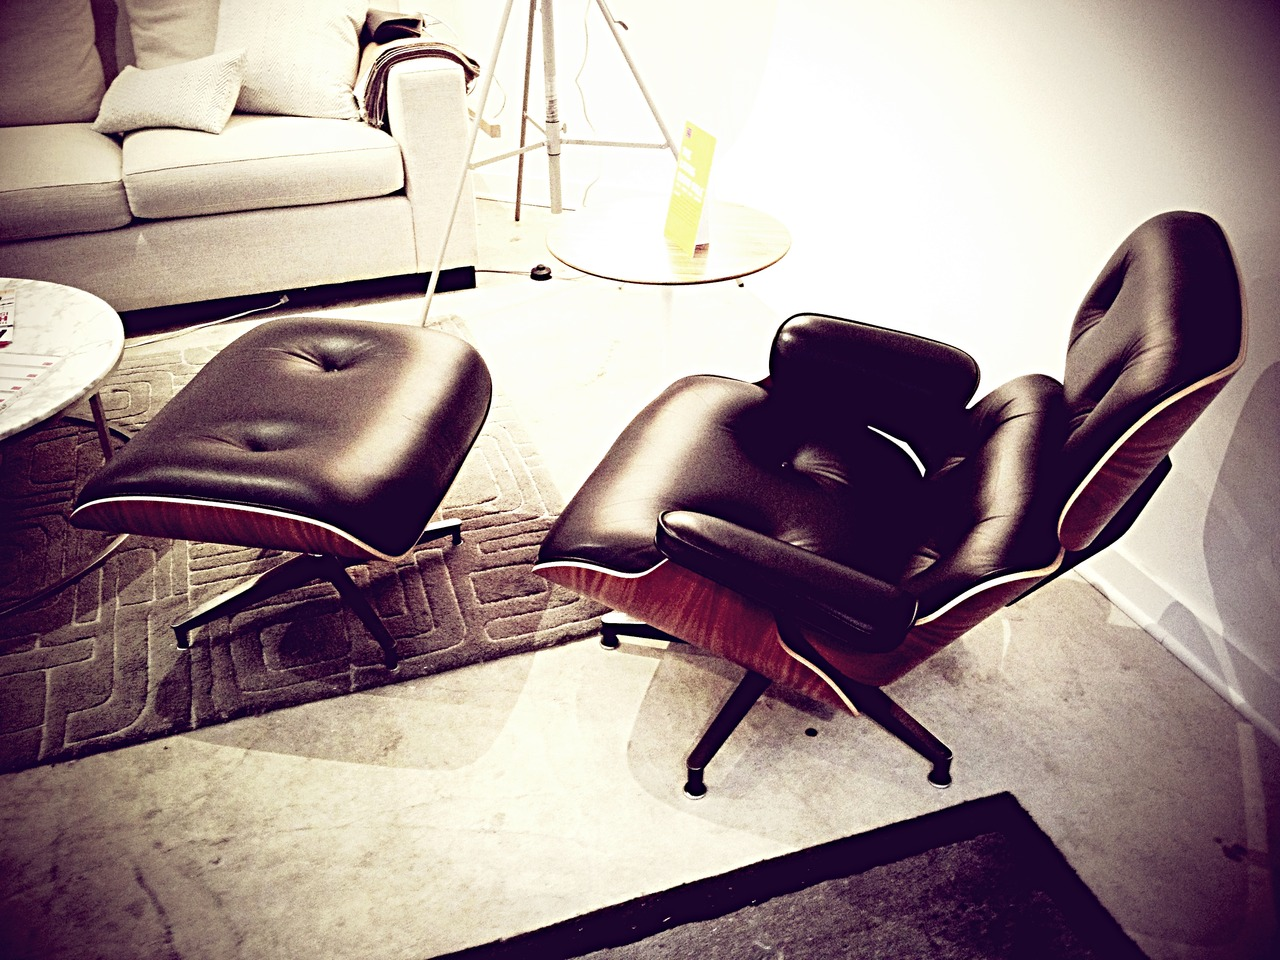 Eames Chair at DWR #peppersearching #pepper #design #eames